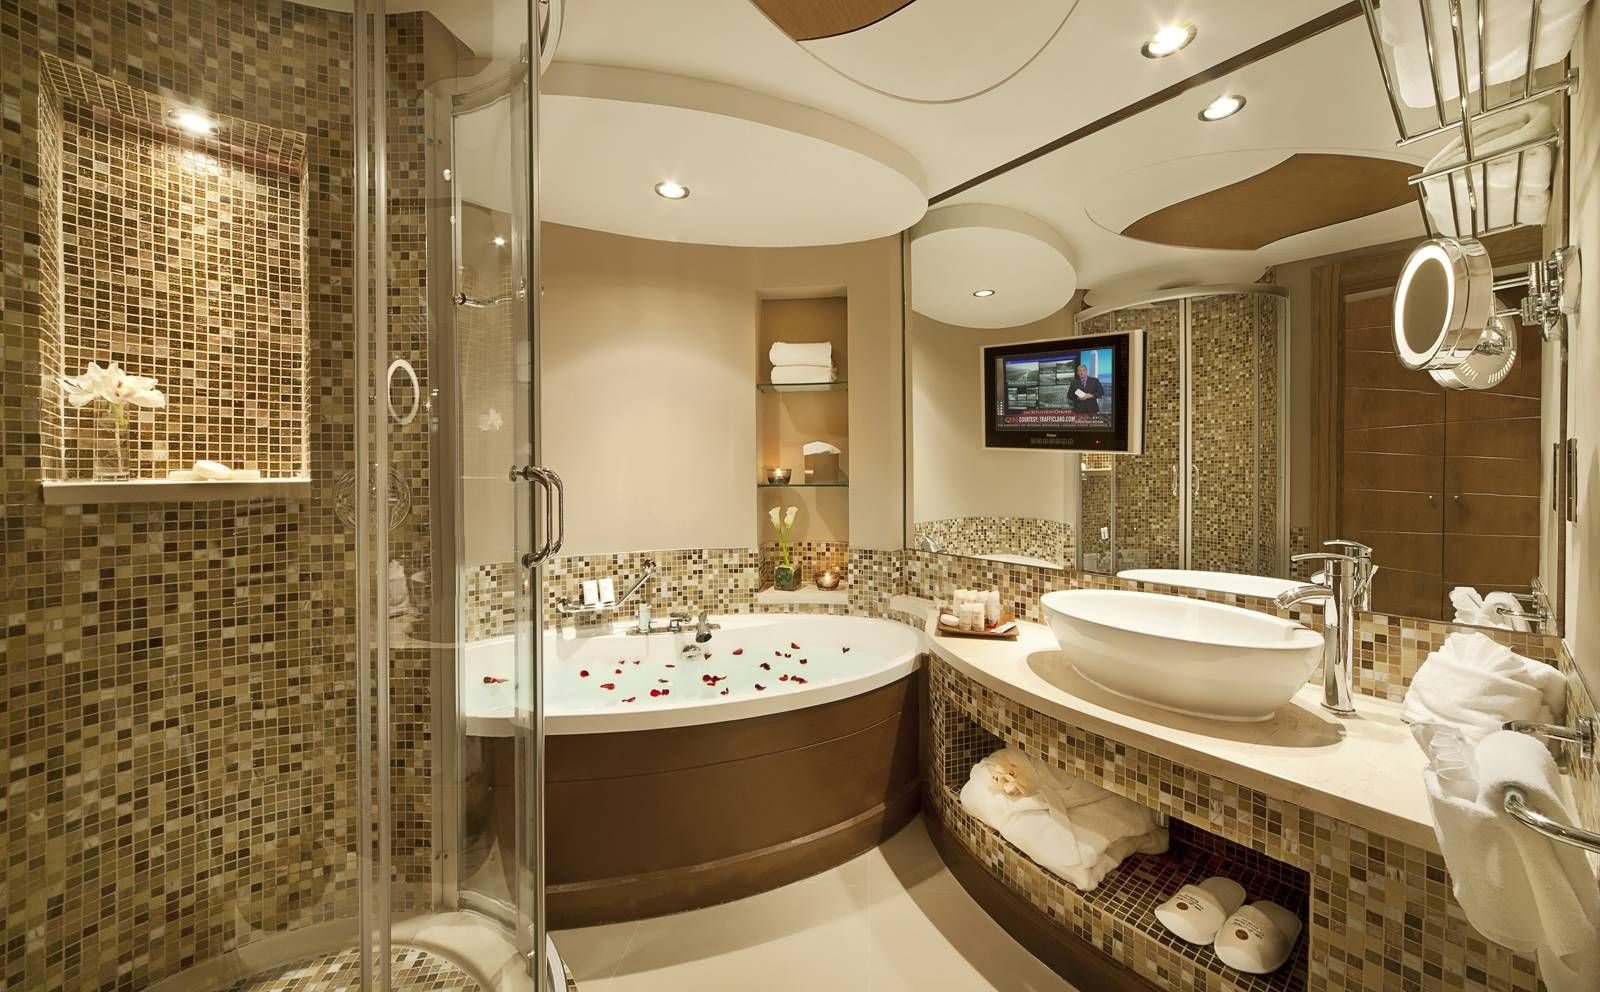 Luxury Bathrooms Photo Gallery Photo Gallery 5 Star Luxury Hotel In Bahrain The